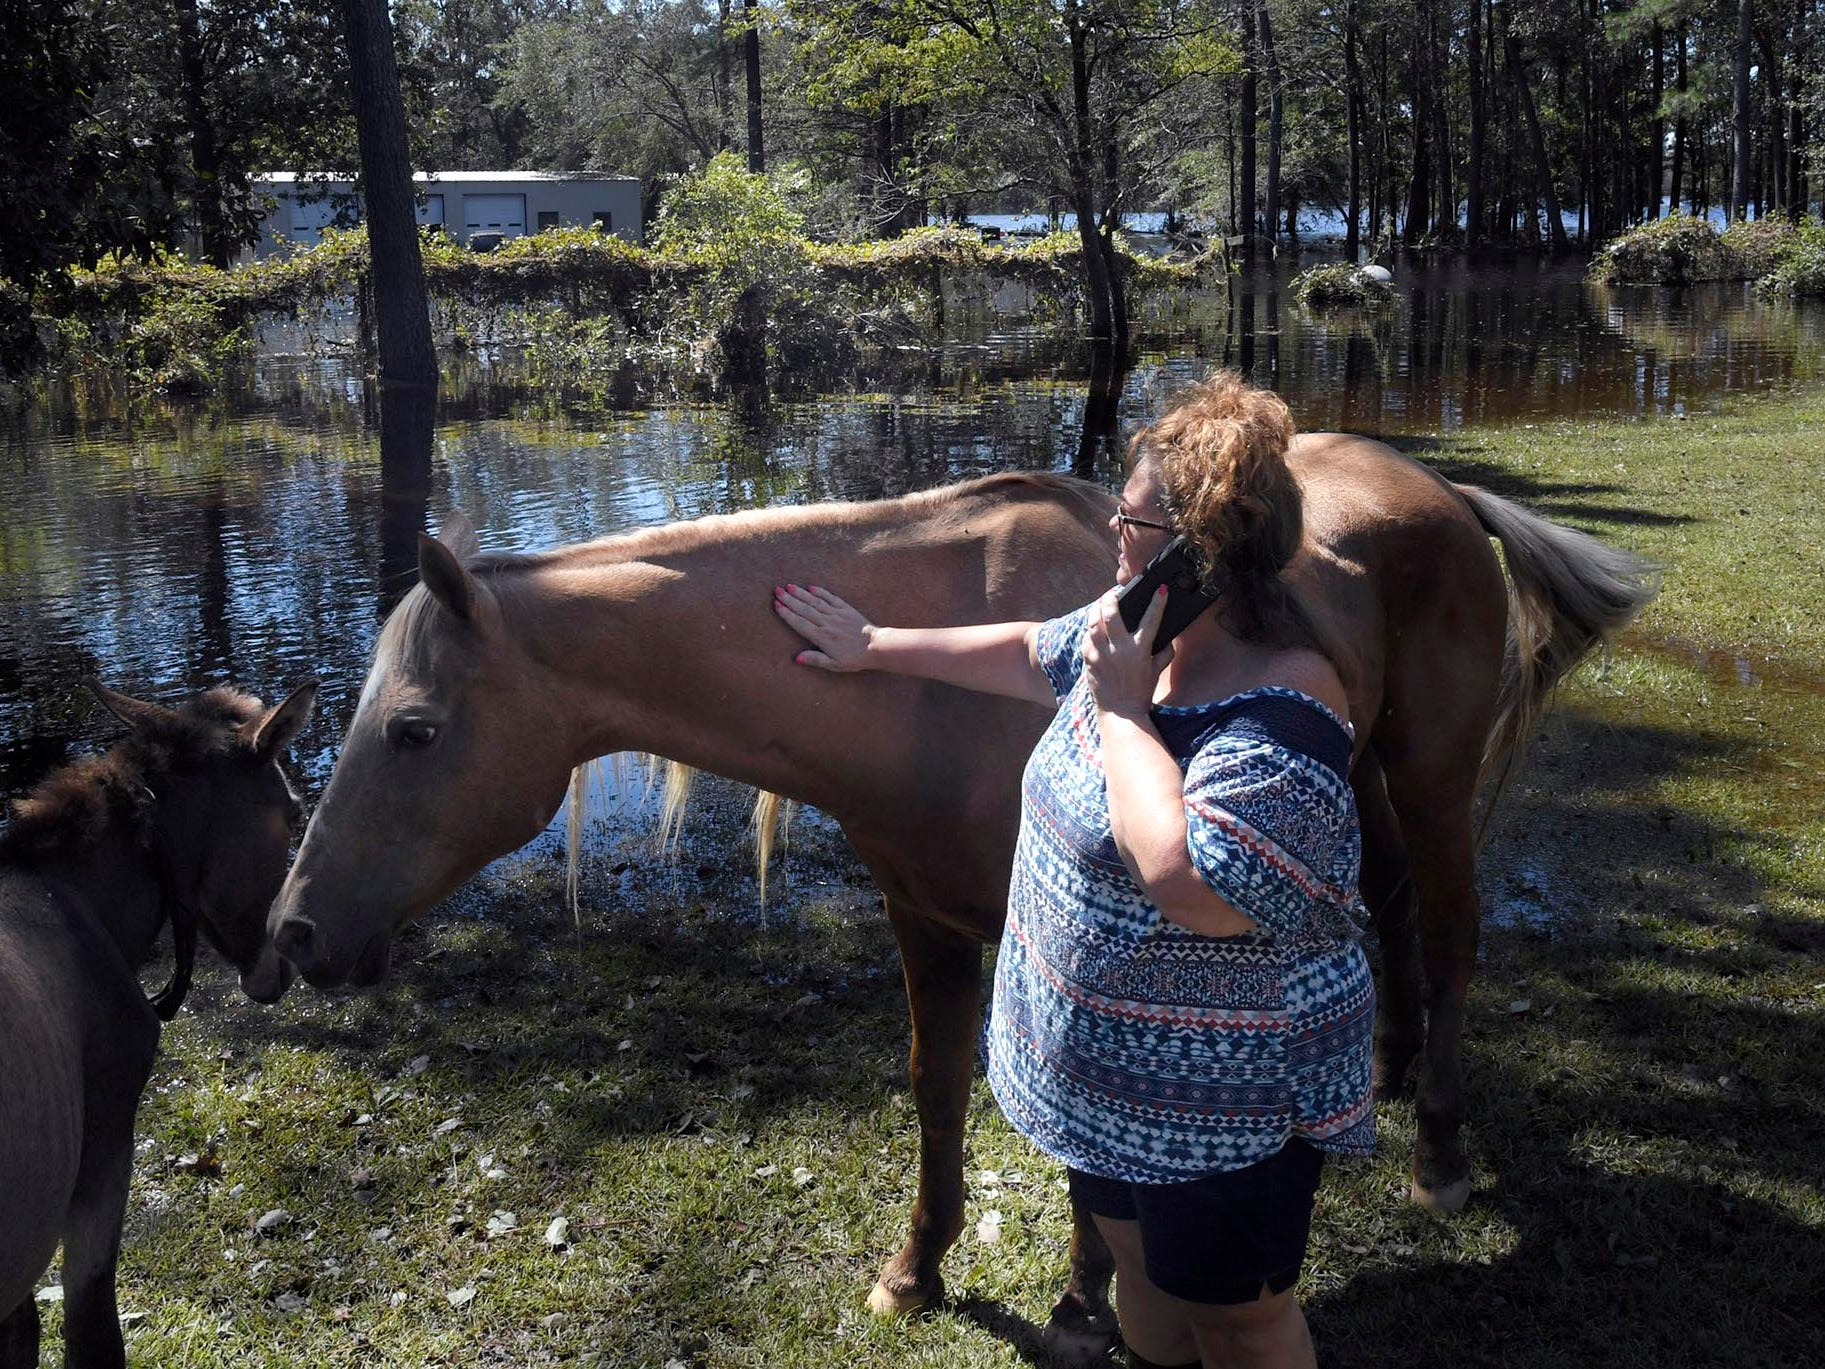 Wendy Rhodes pets her horse and donkey in her flooded backyard in Hallsville, N.C. in Dublin County Sept. 18, 2018.